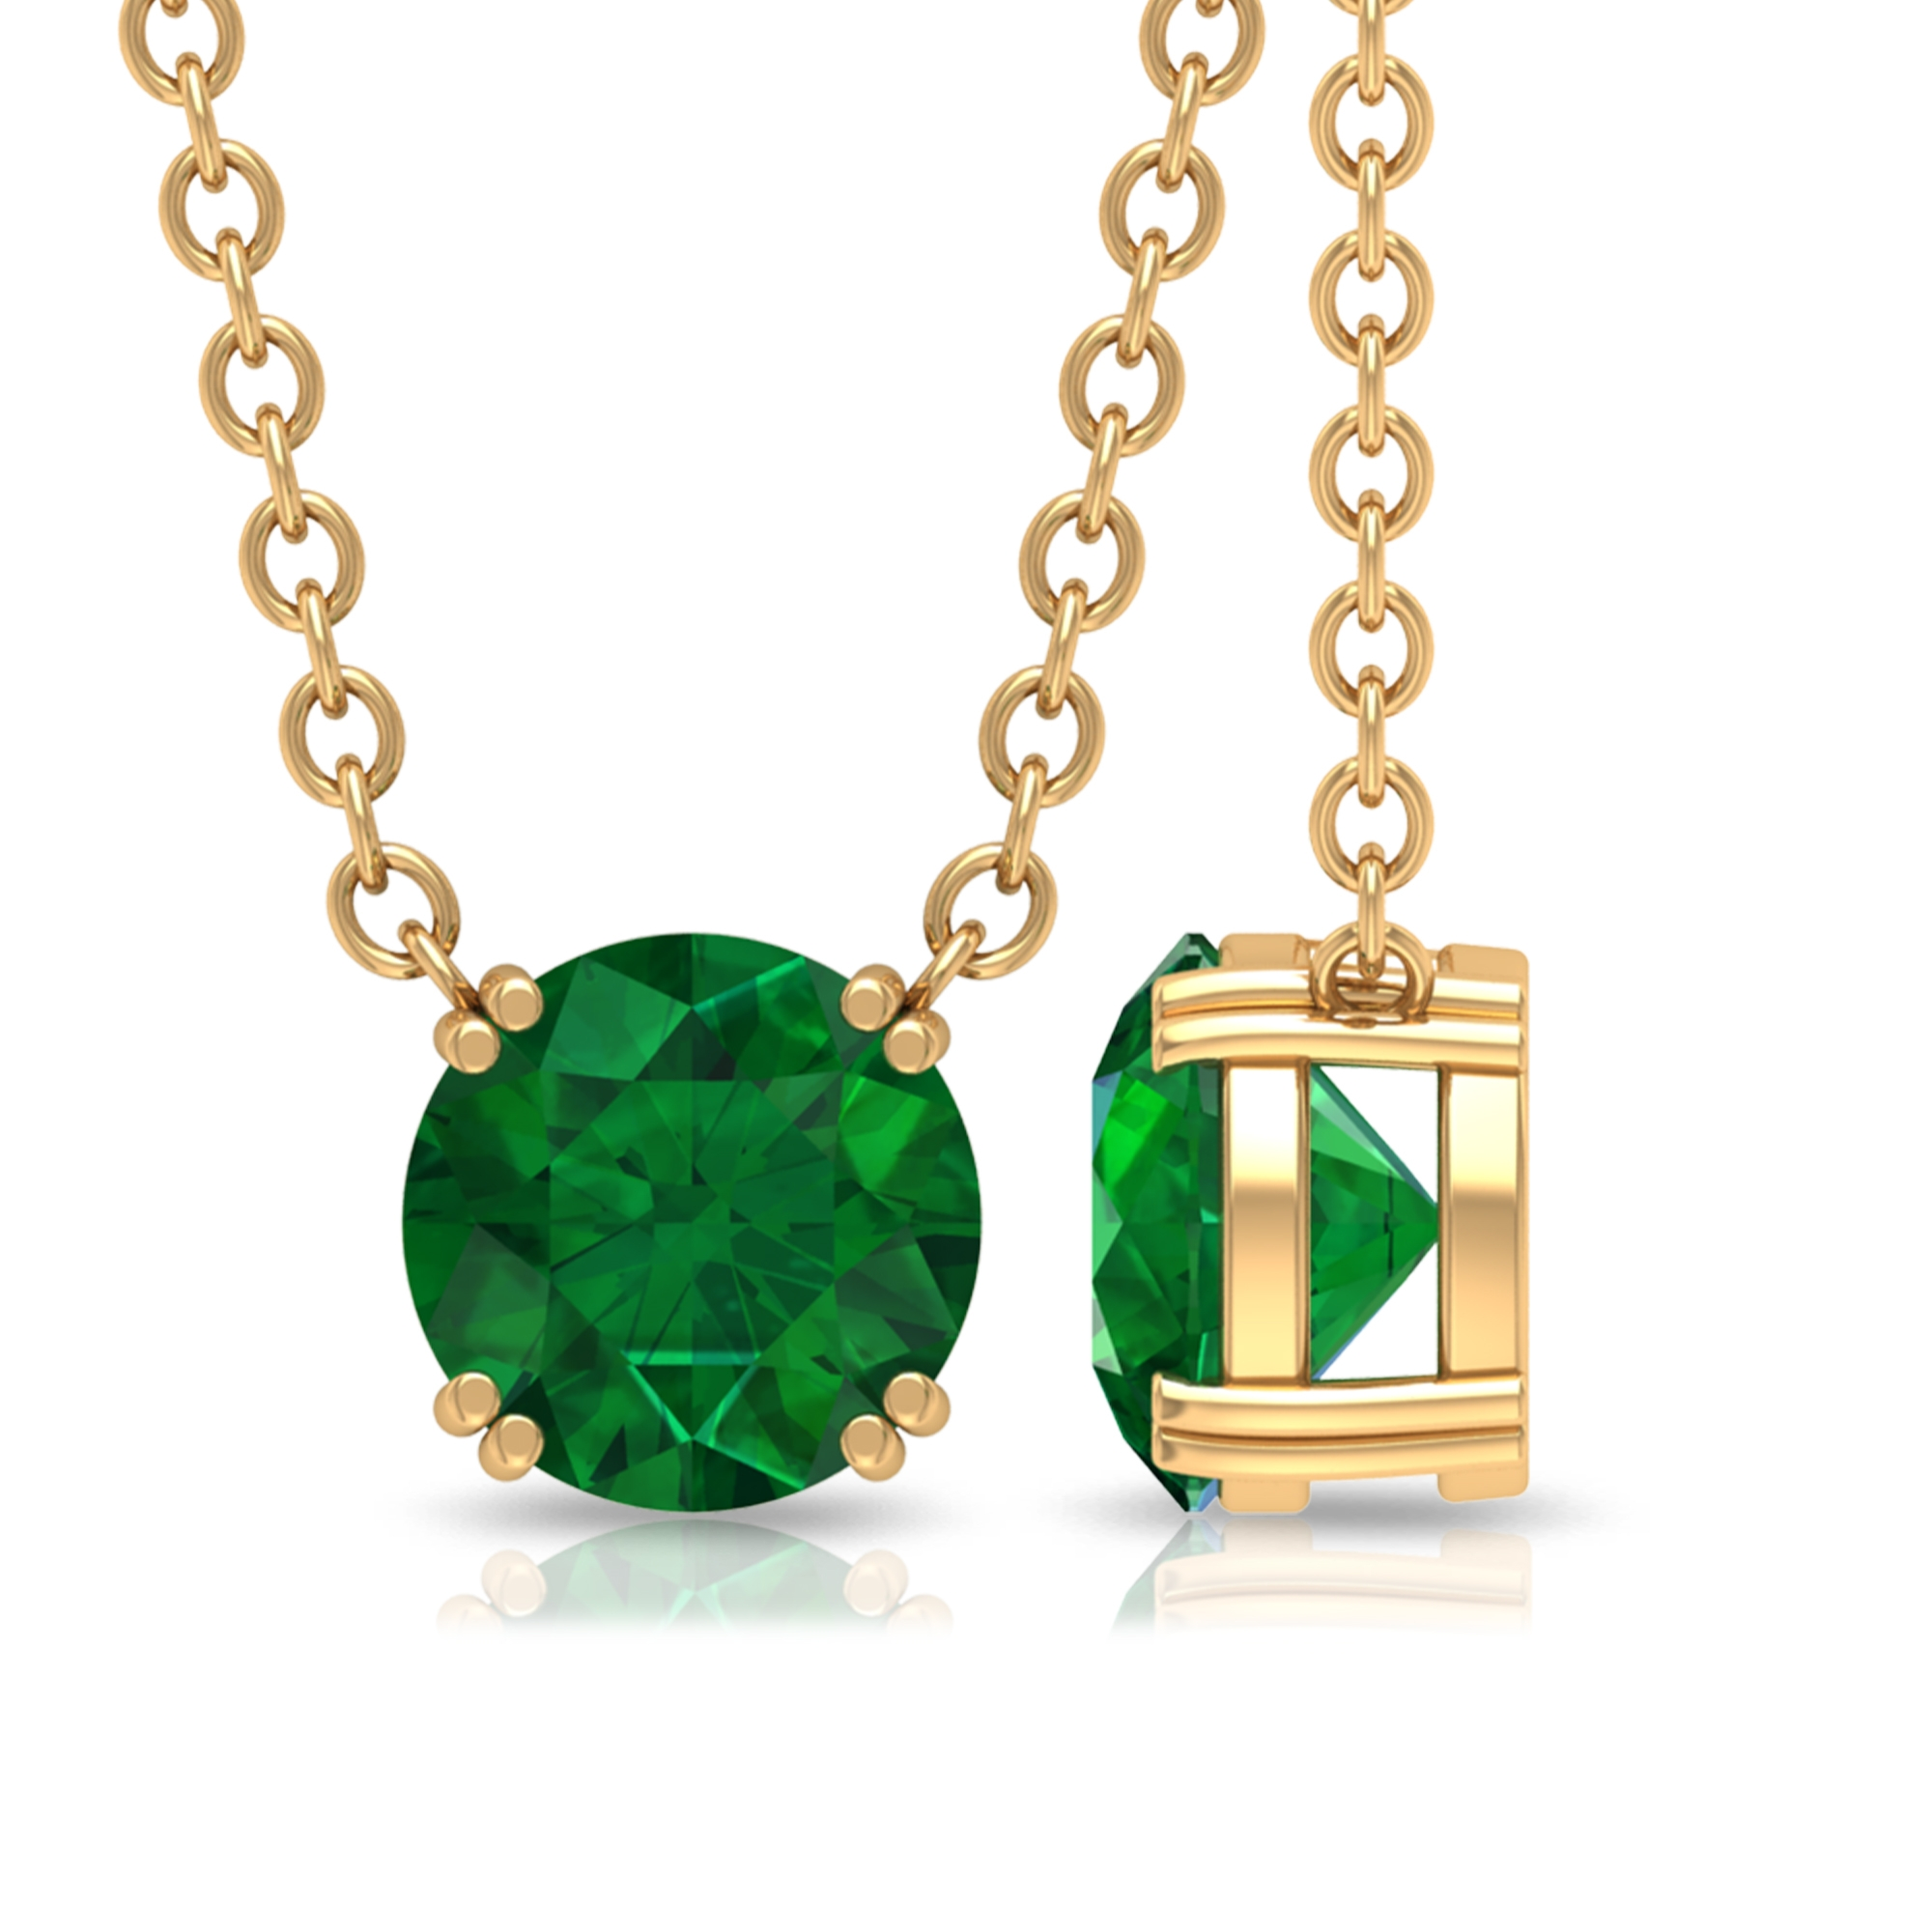 Double Prong Set 5 MM Round Cut Emerald Solitaire Minimal Necklace